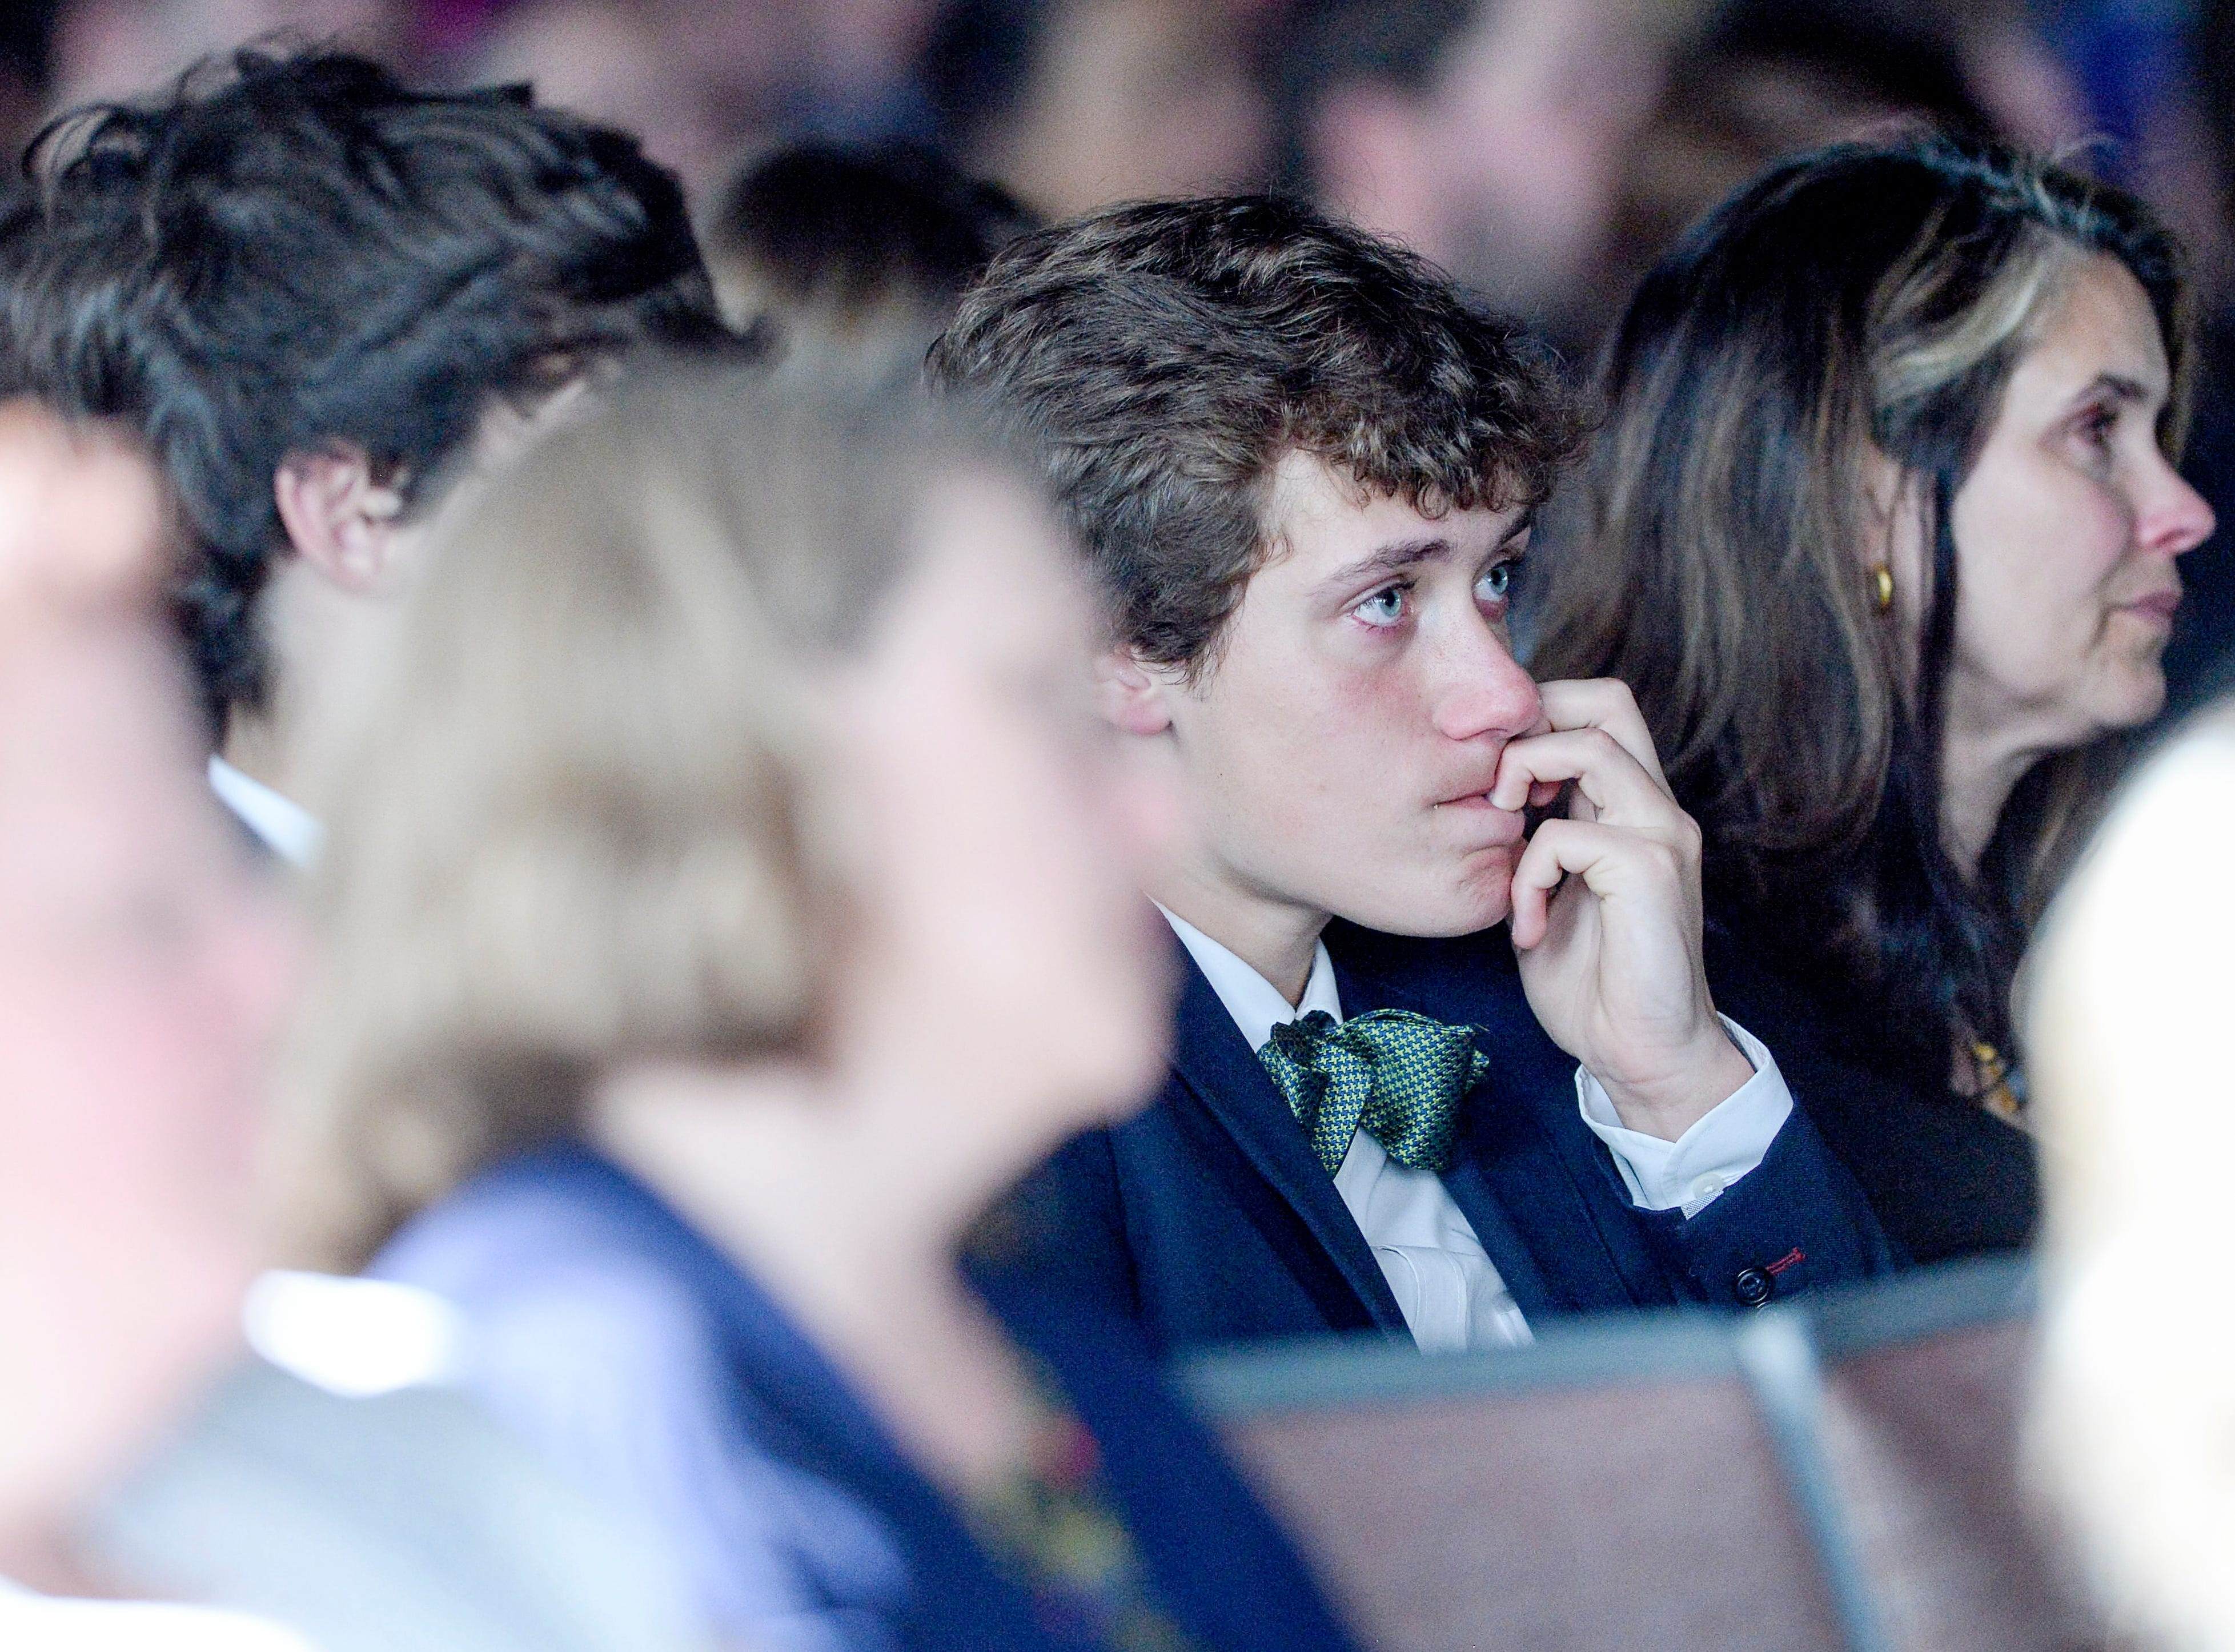 People listen during a memorial service for Riley Howell at Stuart Auditorium in Lake Junaluska May 5, 2019.